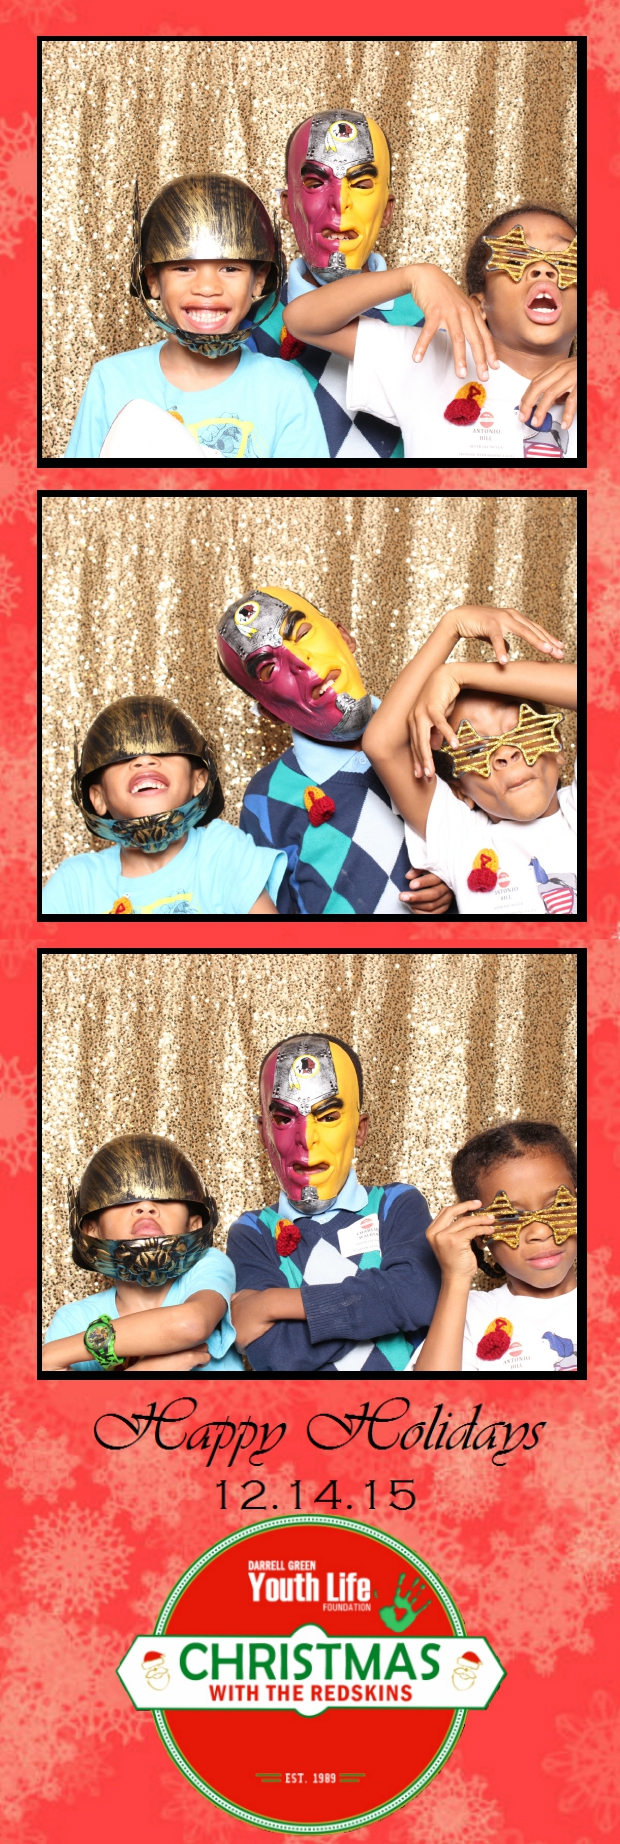 Guest House Events Photo Booth DGYLF Strips (20).jpg